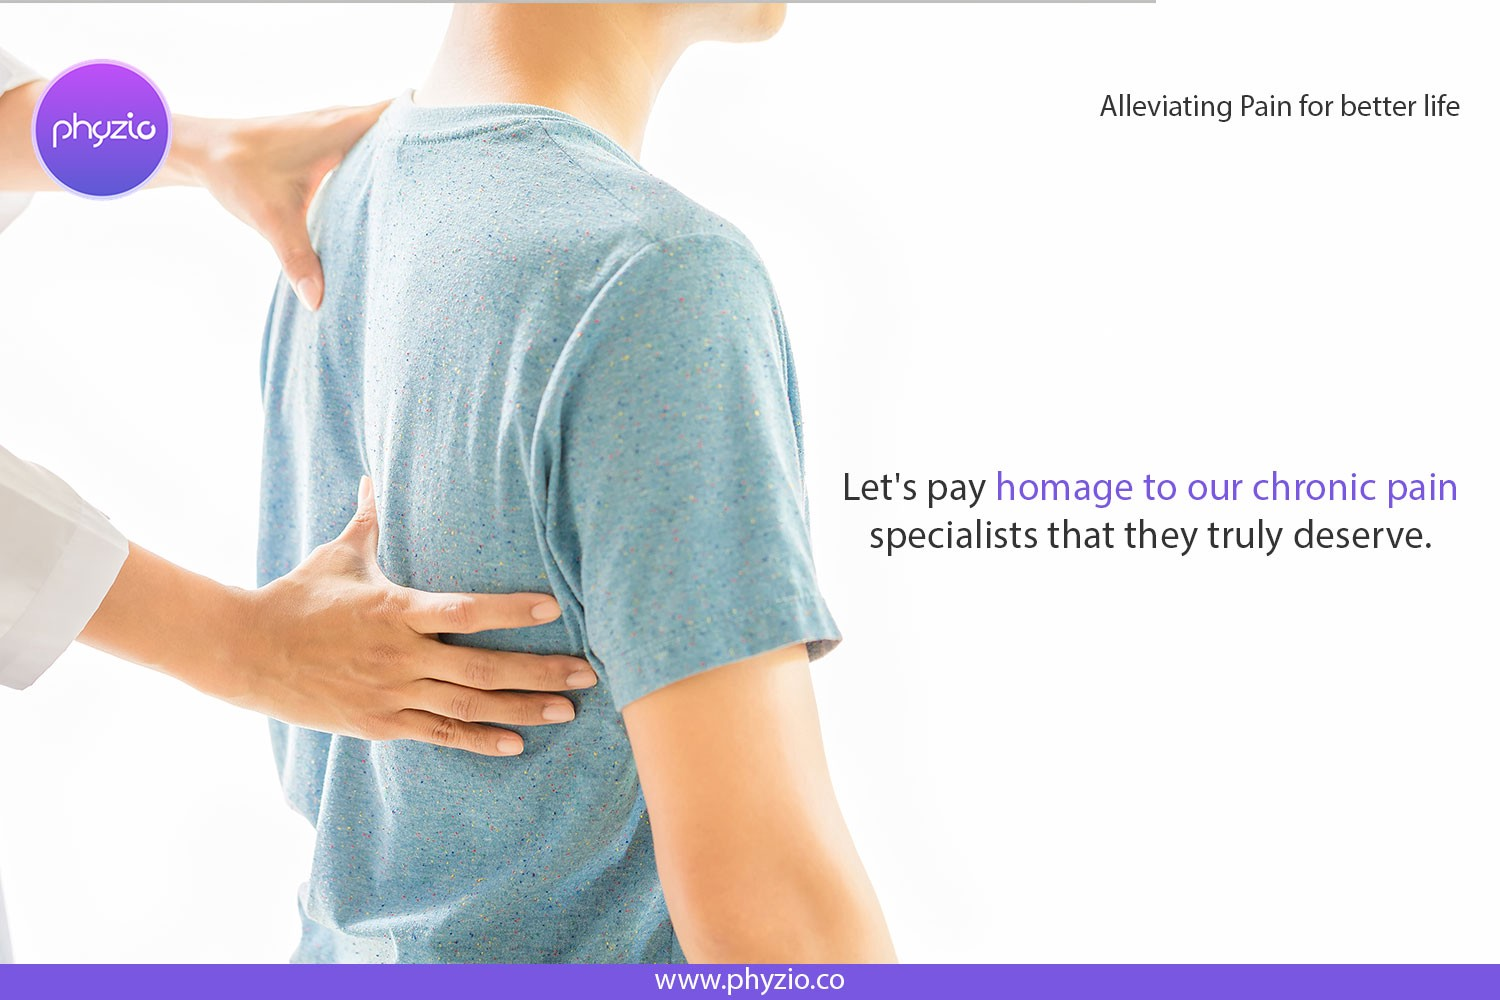 Why we need physiotherapist for our pain